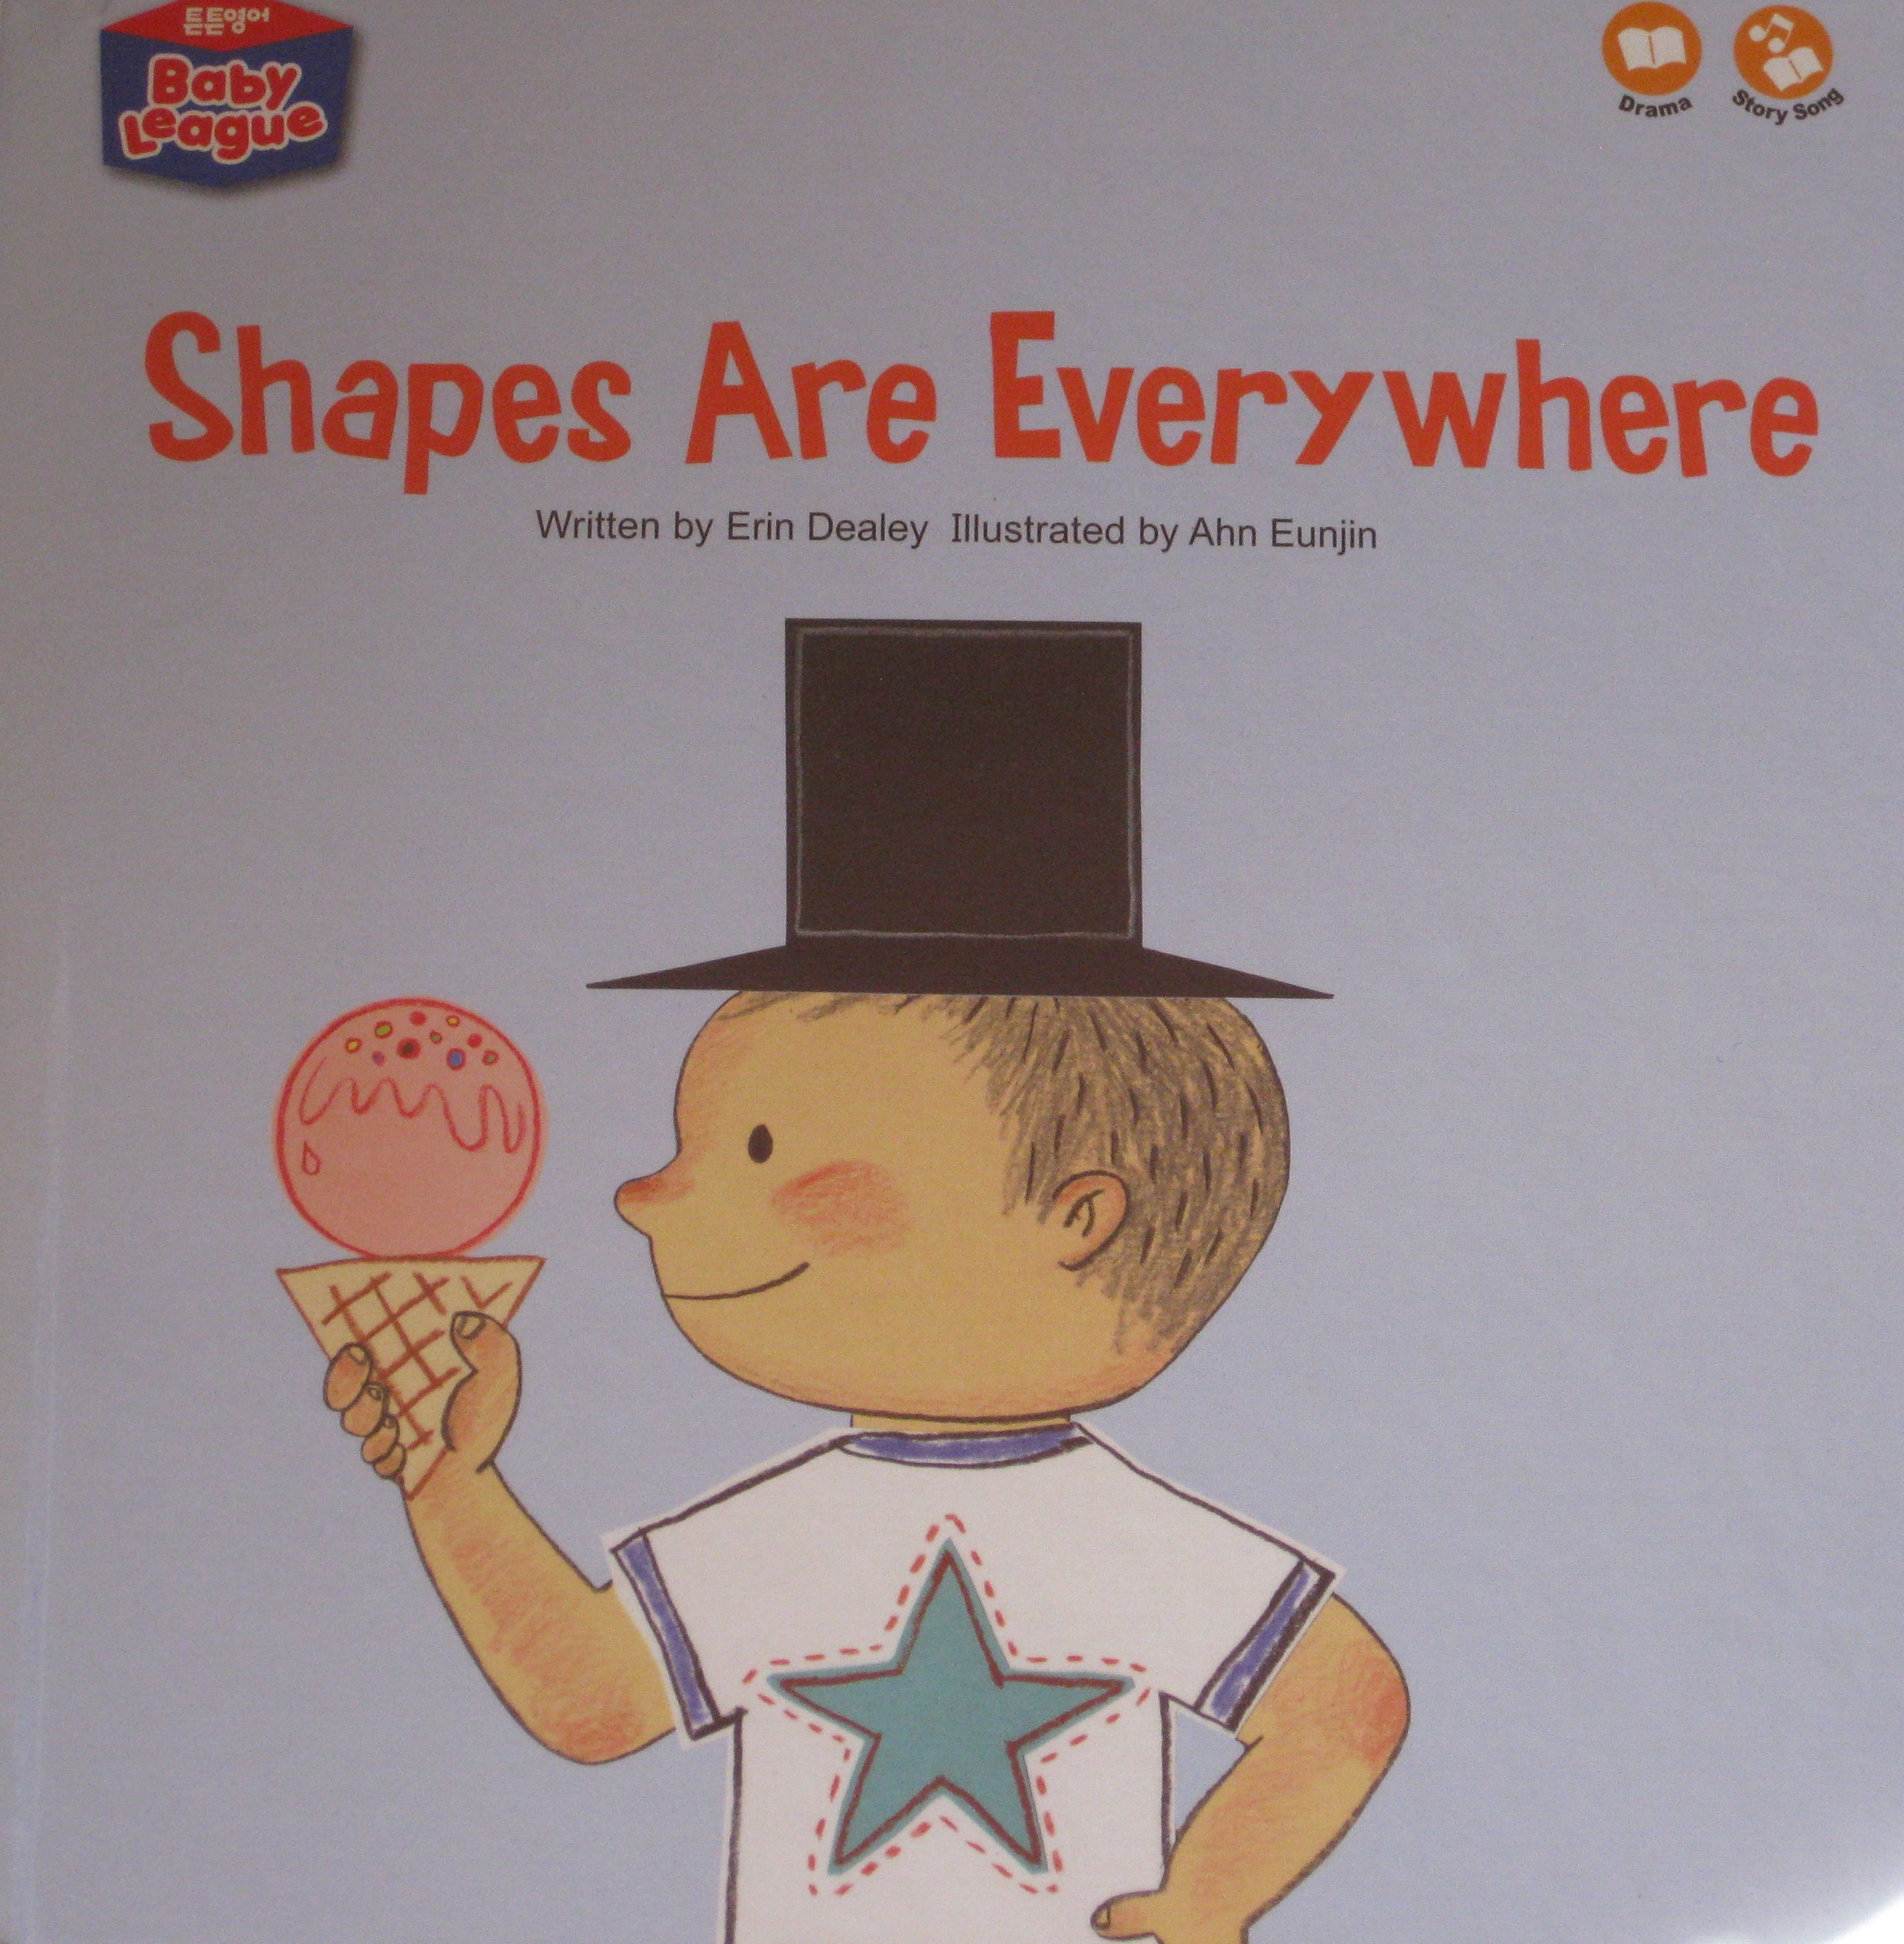 Shapes Are Everywhere #erindealey